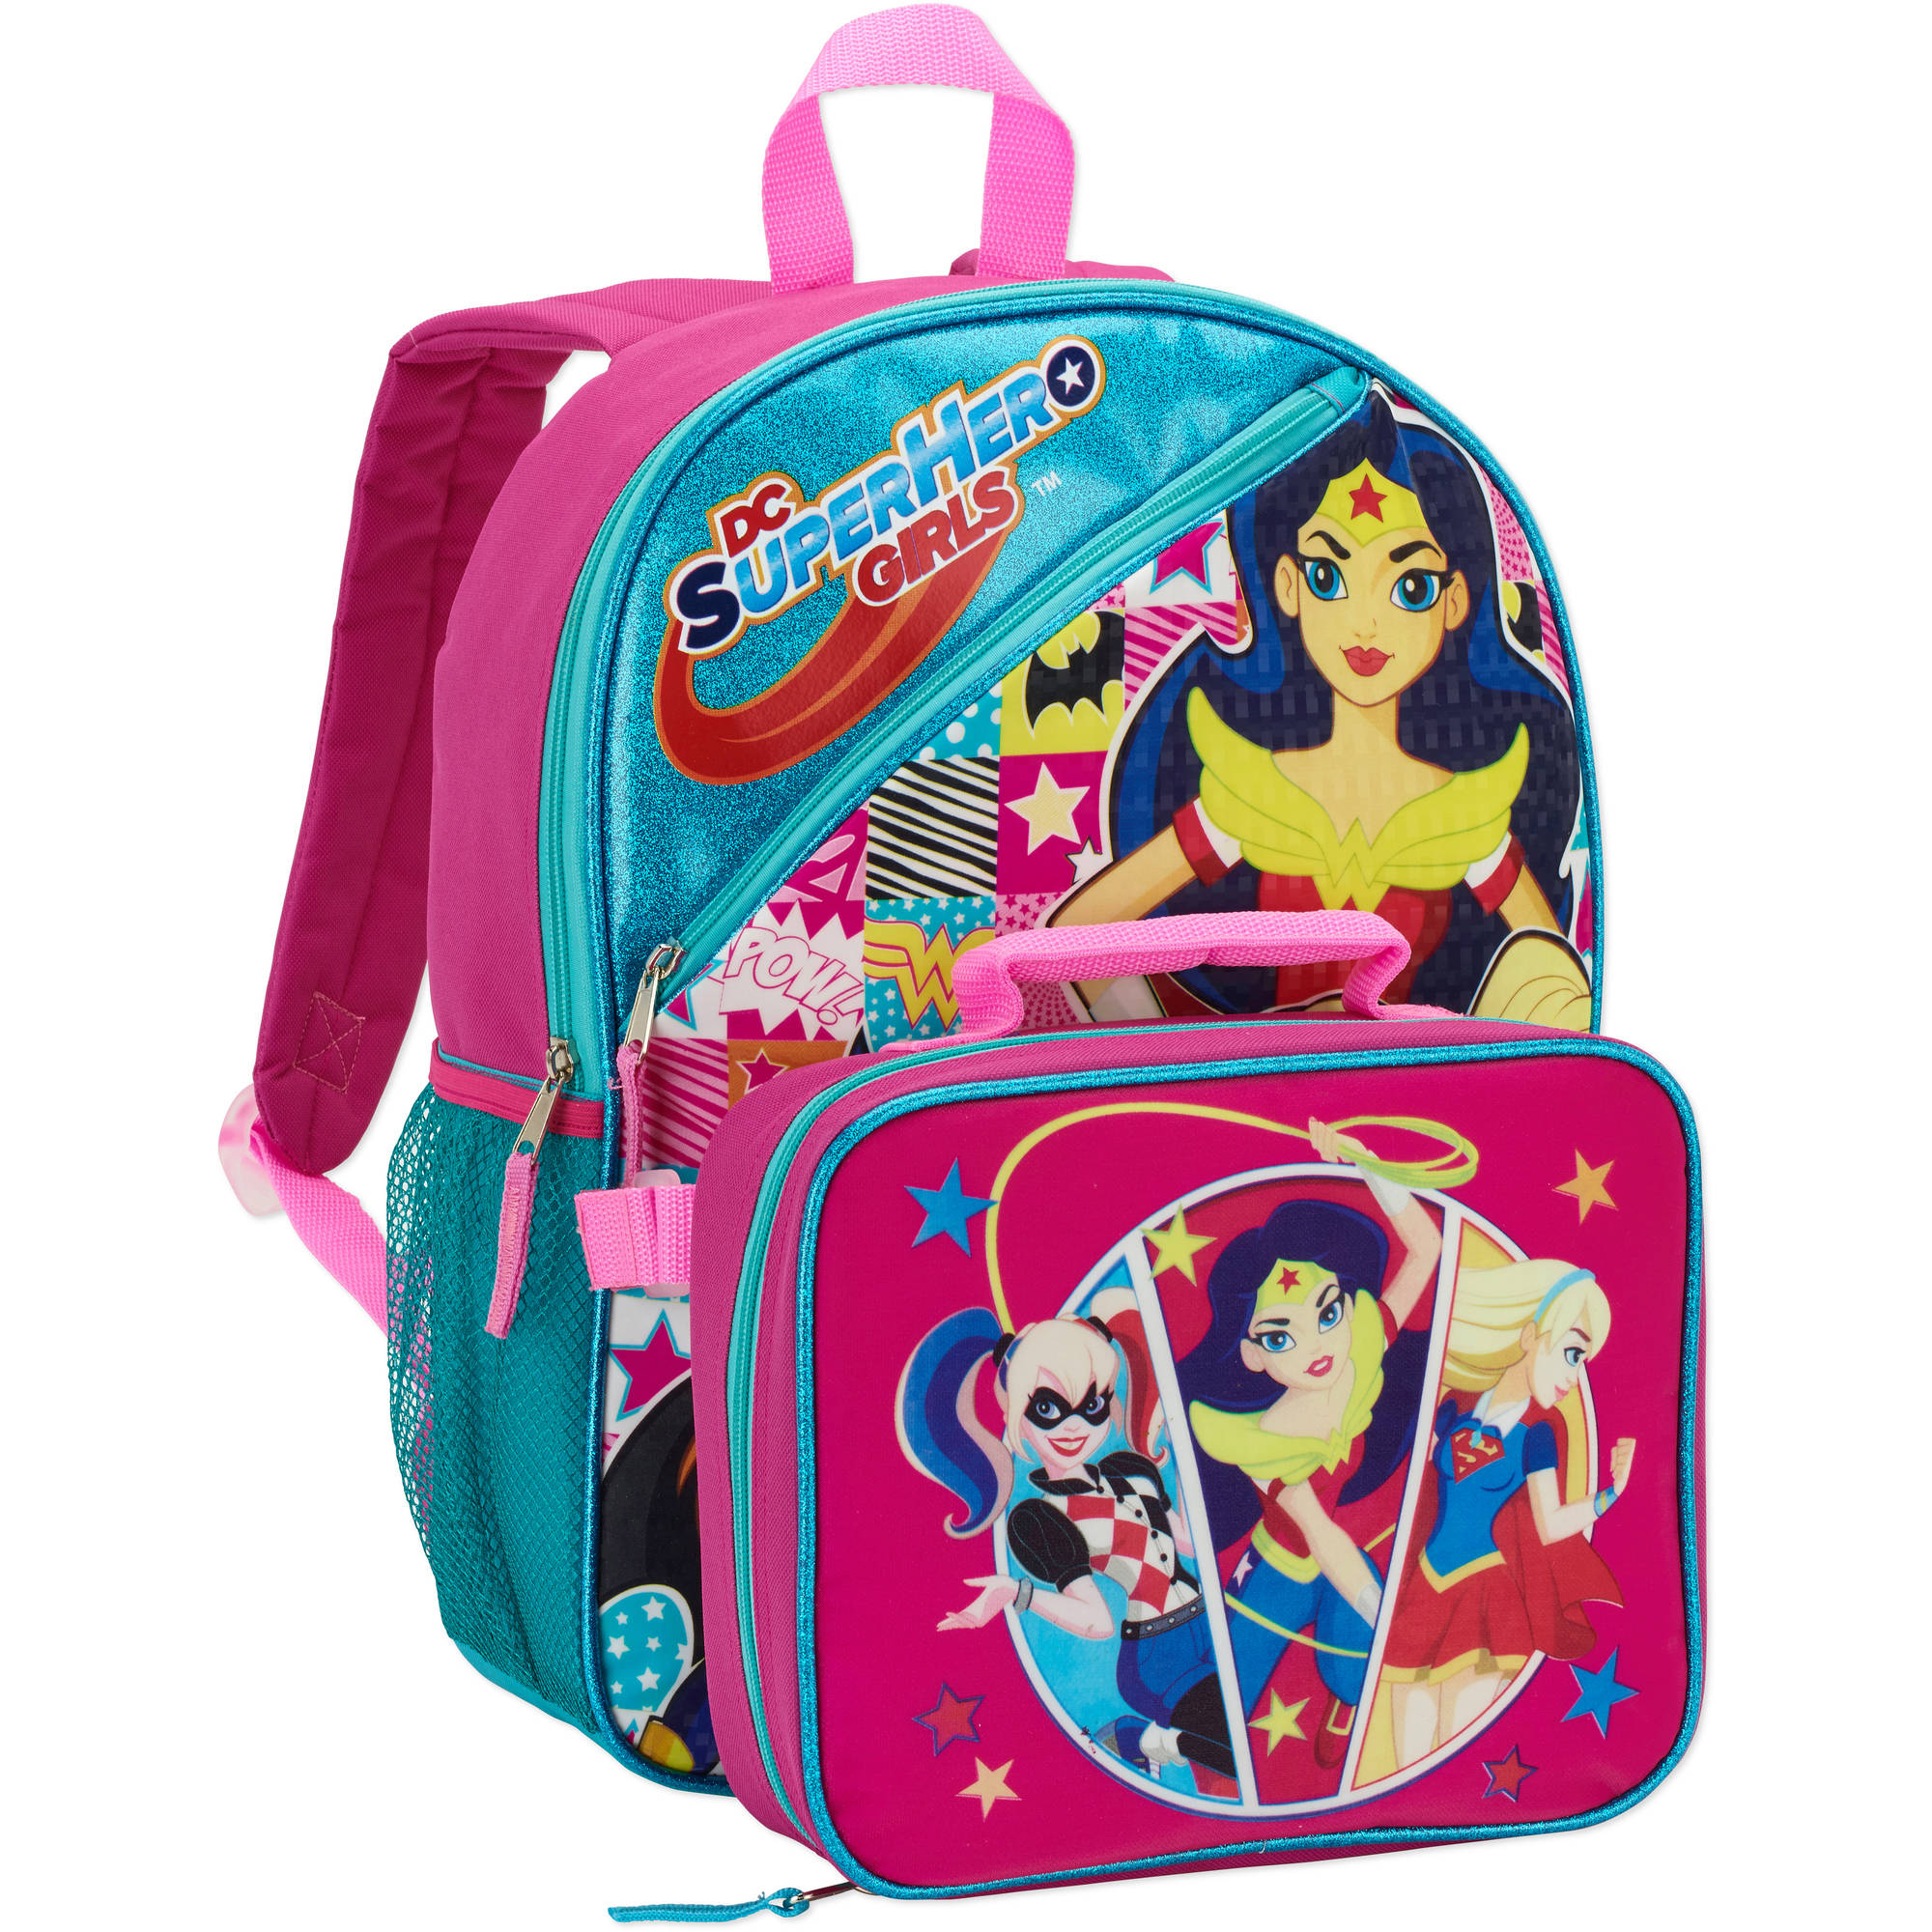 Kids Full Size Backpack with Detachable Lunch Bag Collection